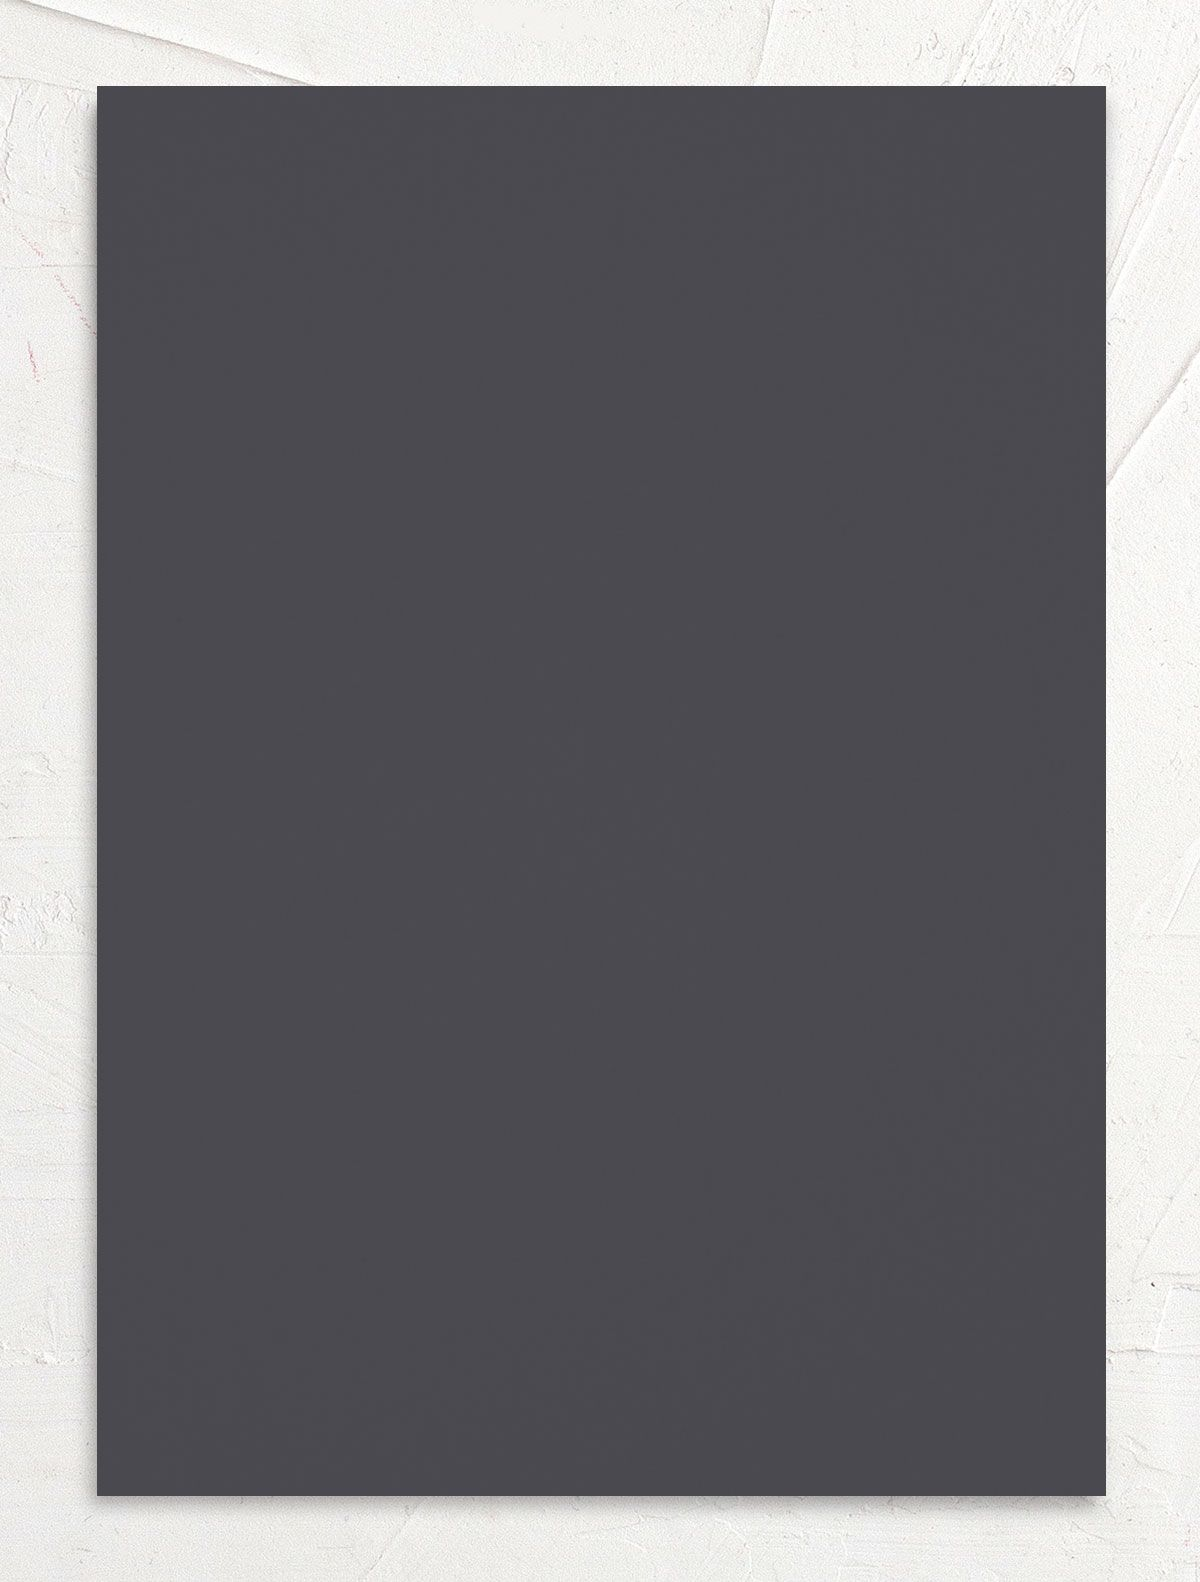 We Do Wedding Invitation back grey